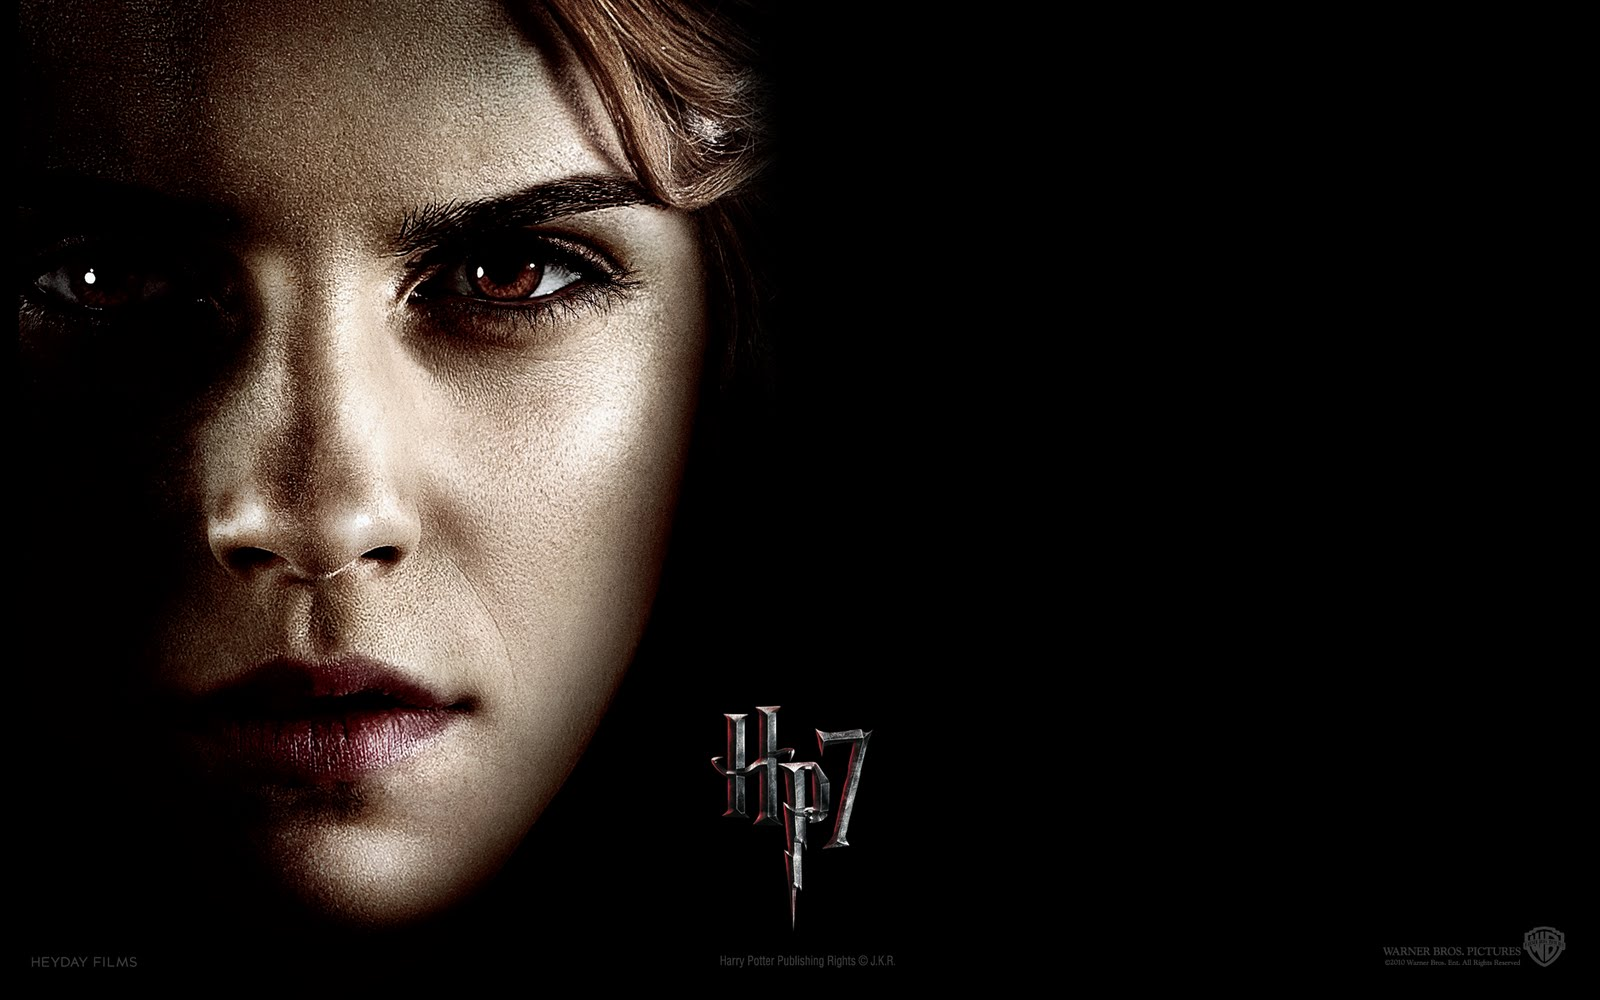 http://1.bp.blogspot.com/-RLQvoeXrf30/Thxp0zjbS3I/AAAAAAAAAI4/S7xIwDUZvHY/s1600/emma-watson-in-harry-potter-and-the-deathly-hallows-part-i-wallpaper-14_1920x1200_88261.jpg